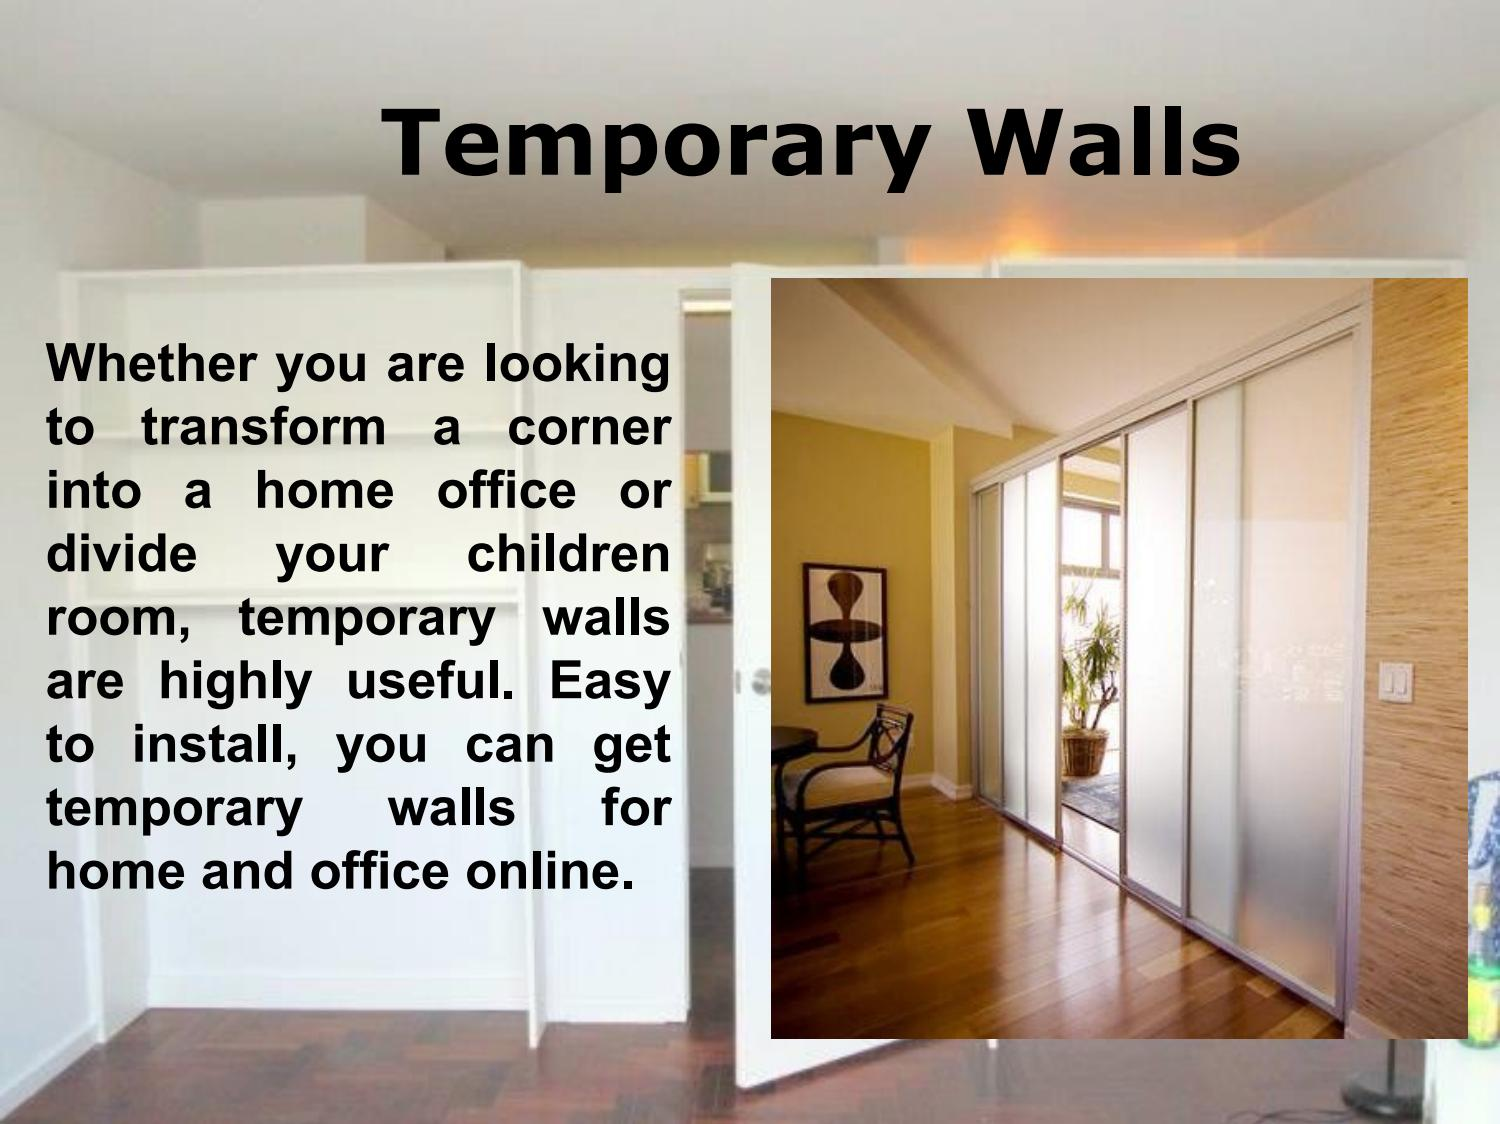 How to Build Temporary Walls by 1daywall issuu